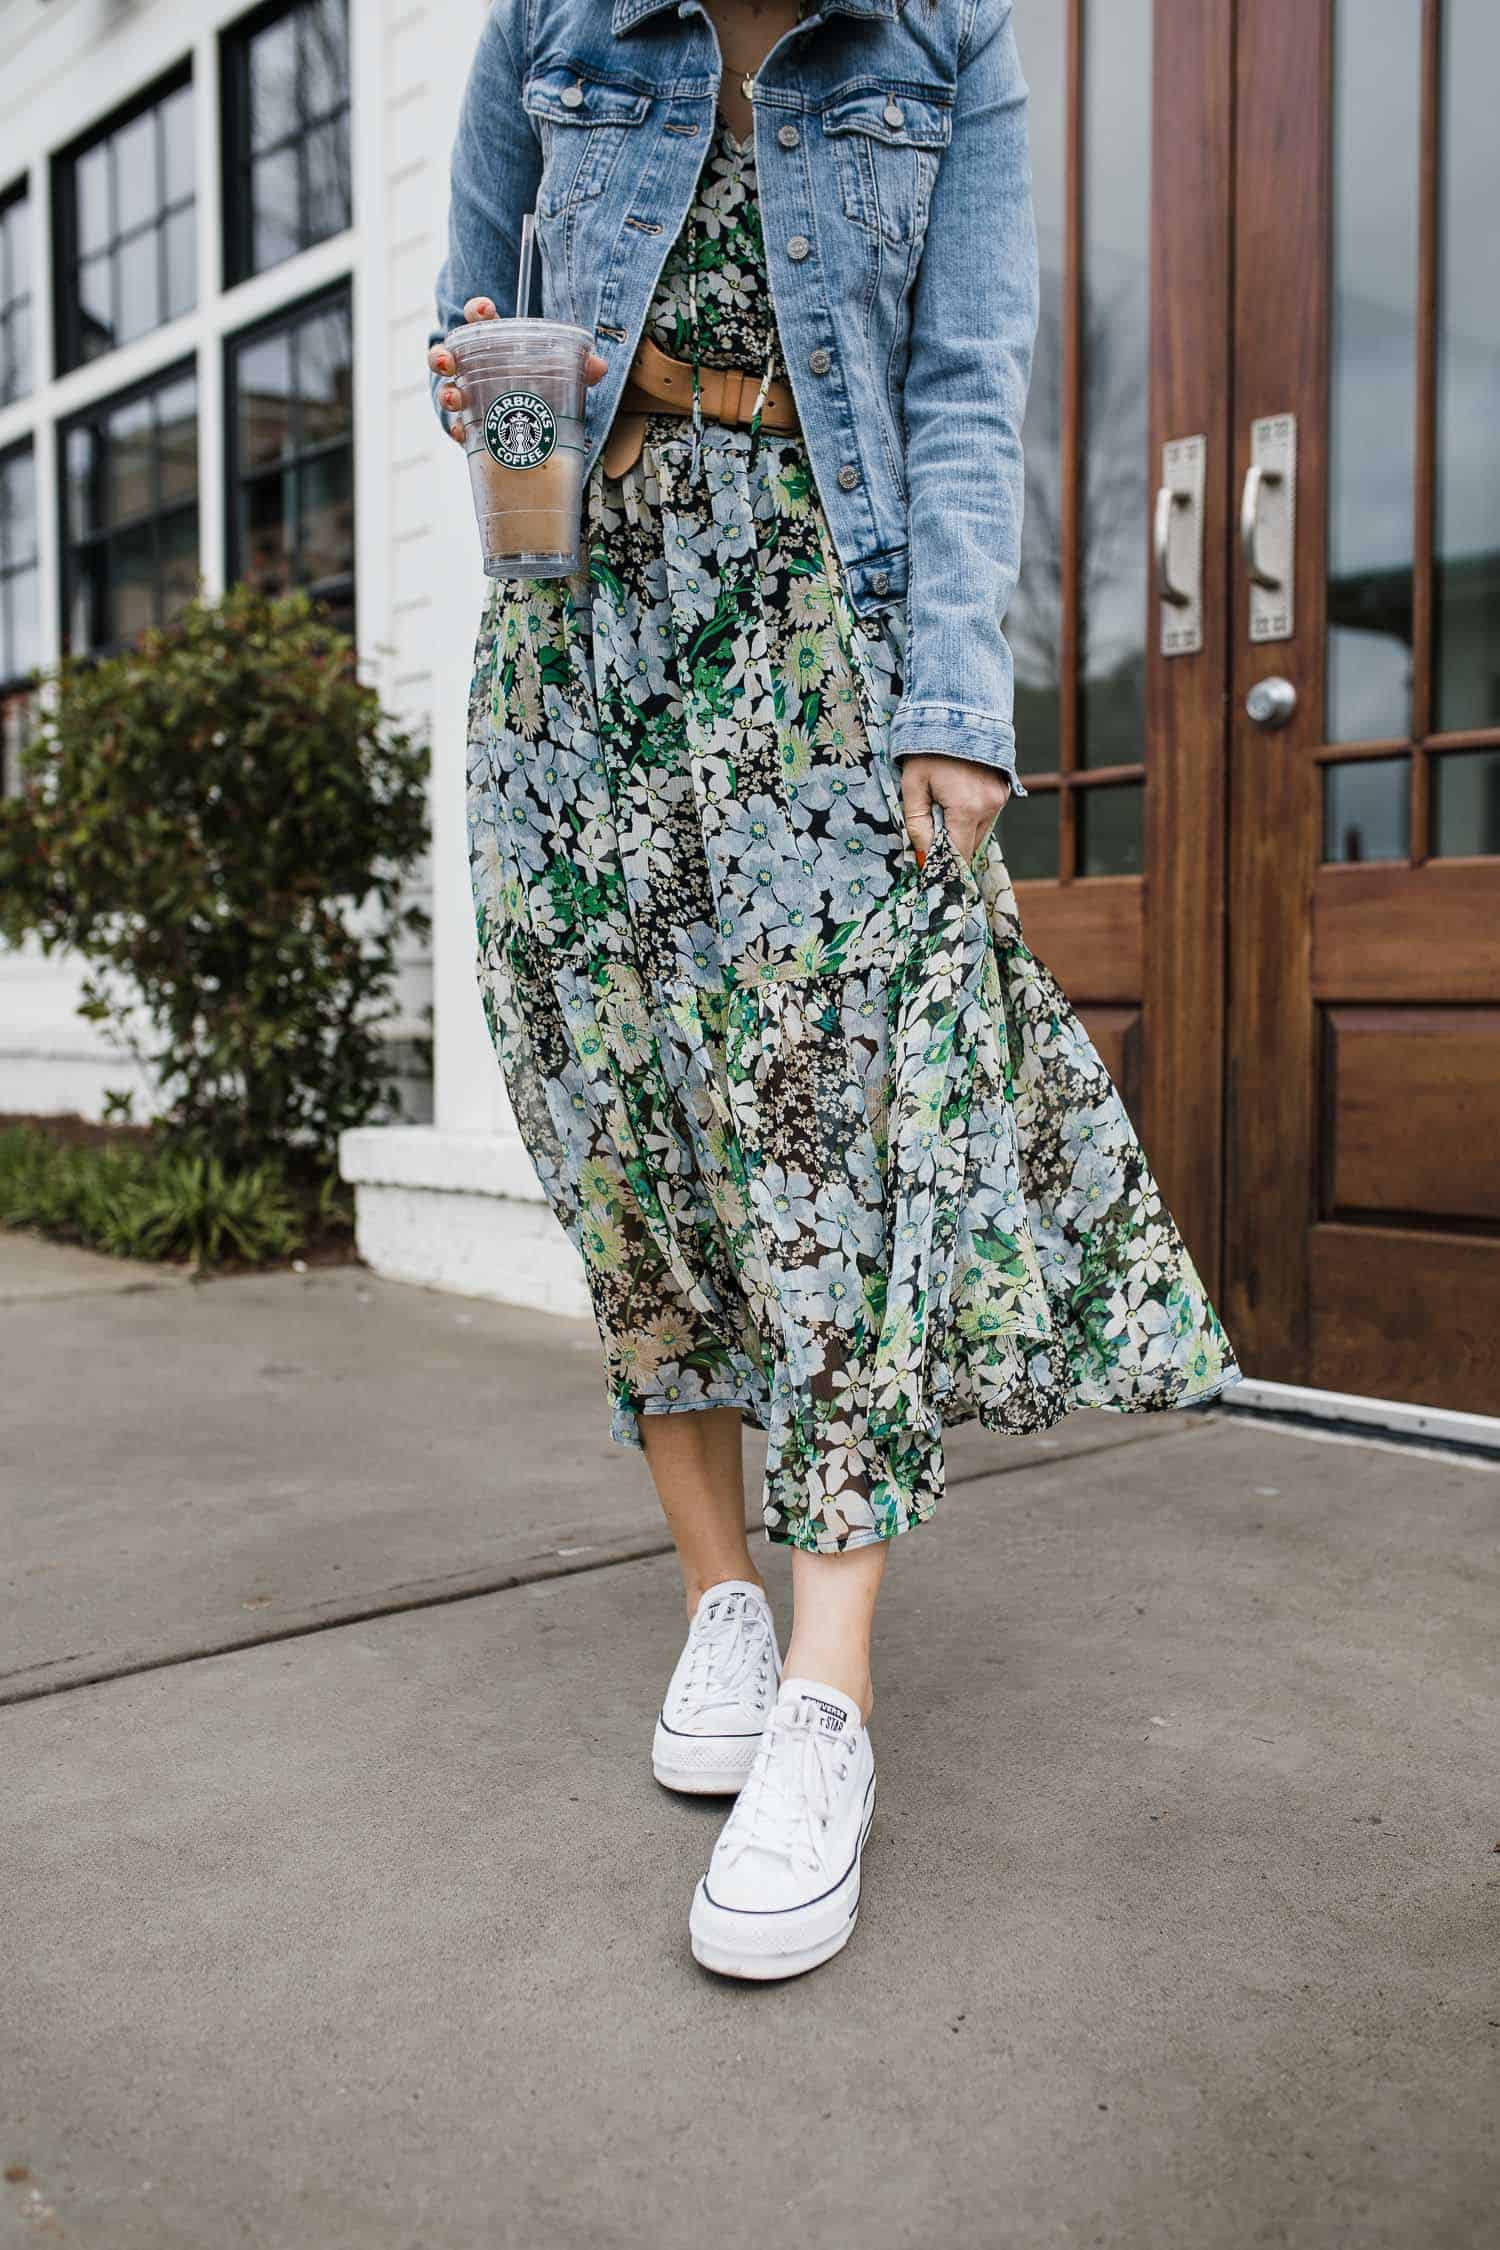 floral dress with converse